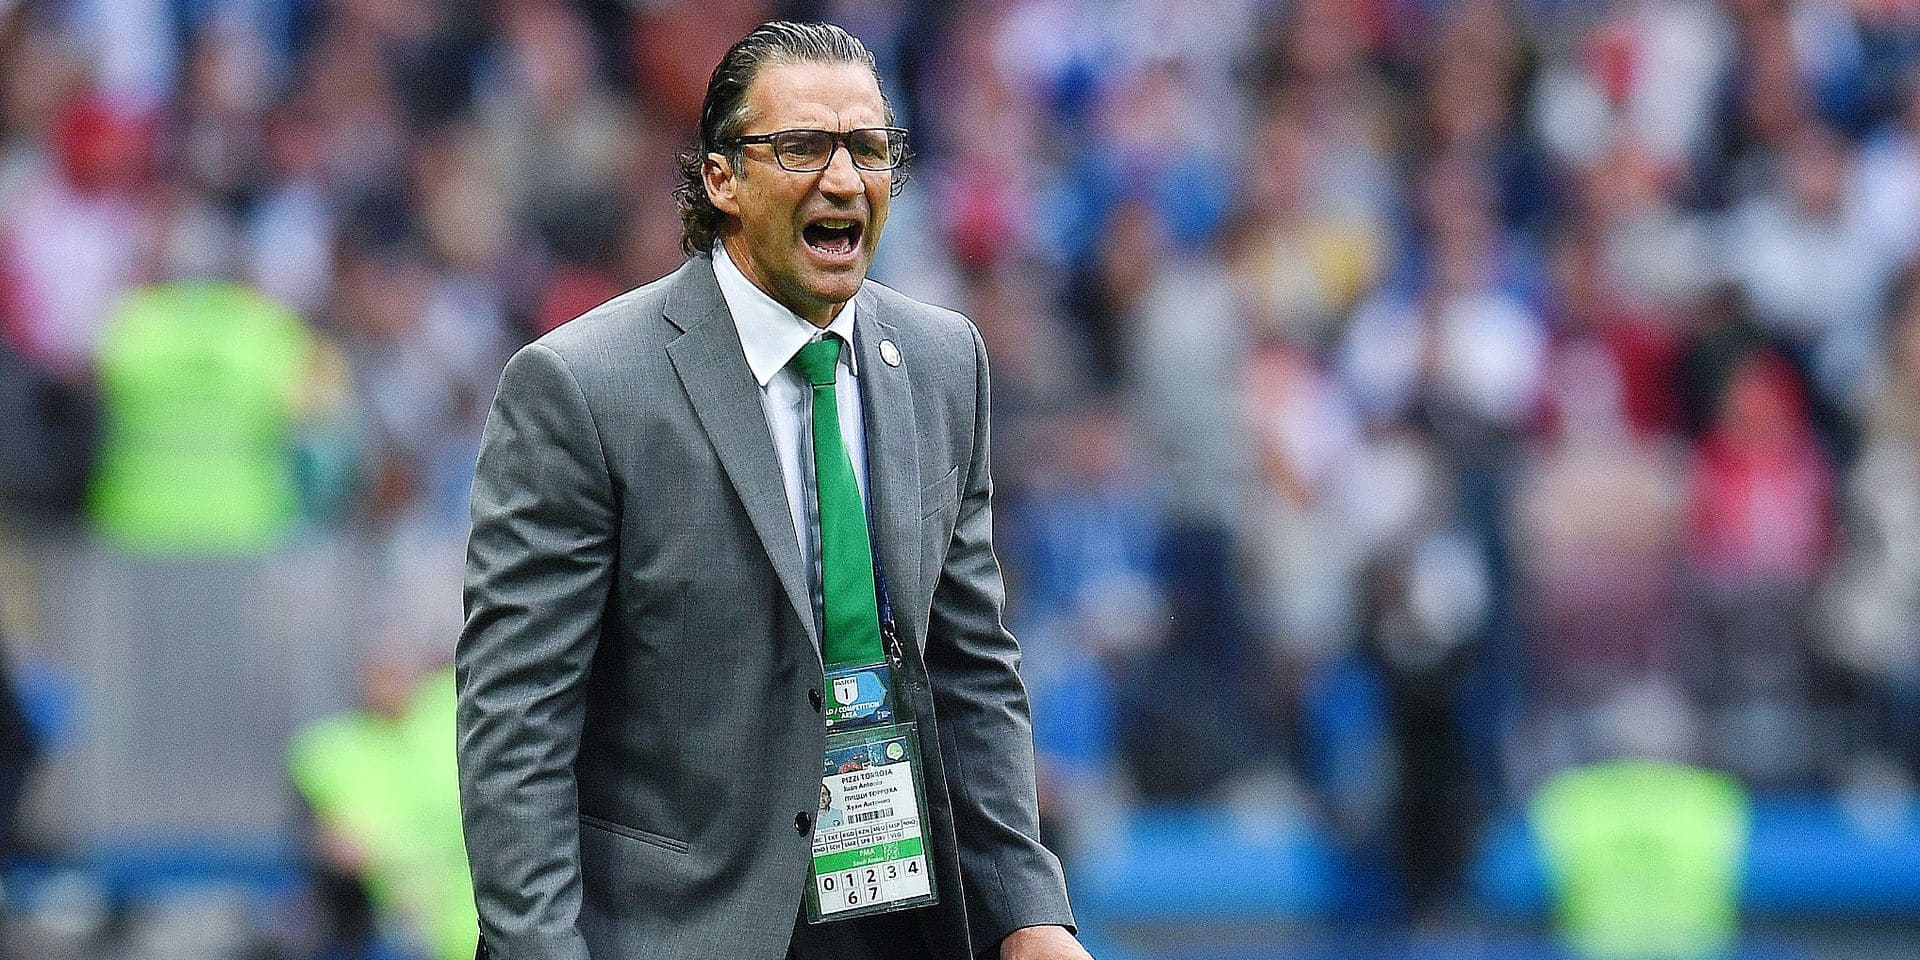 Saudi Arabia's coach Juan Antonio Pizzi shouts instructions from the sideline during the Russia 2018 World Cup Group A football match between Russia and Saudi Arabia at the Luzhniki Stadium in Moscow on June 14, 2018. / AFP PHOTO / Patrik STOLLARZ / RESTRICTED TO EDITORIAL USE - NO MOBILE PUSH ALERTS/DOWNLOADS